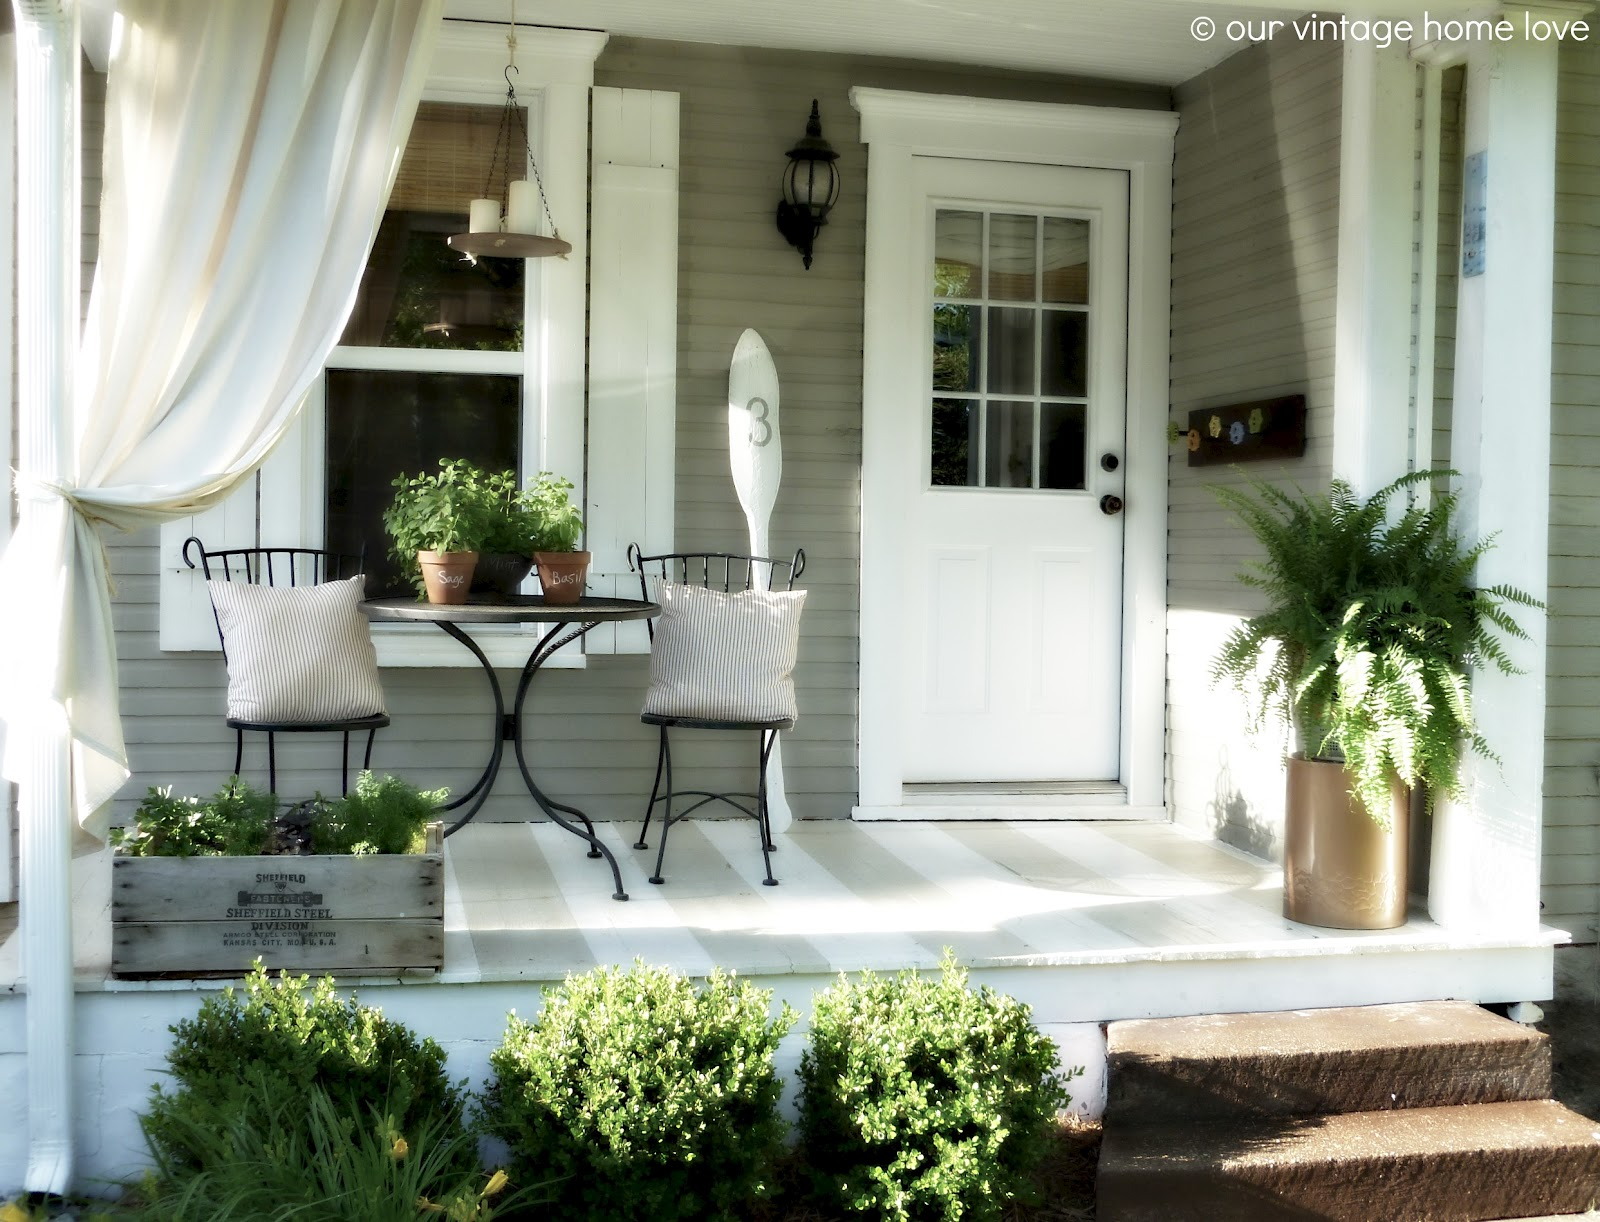 Front porch decorating ideas dream house experience for Front porch designs ideas